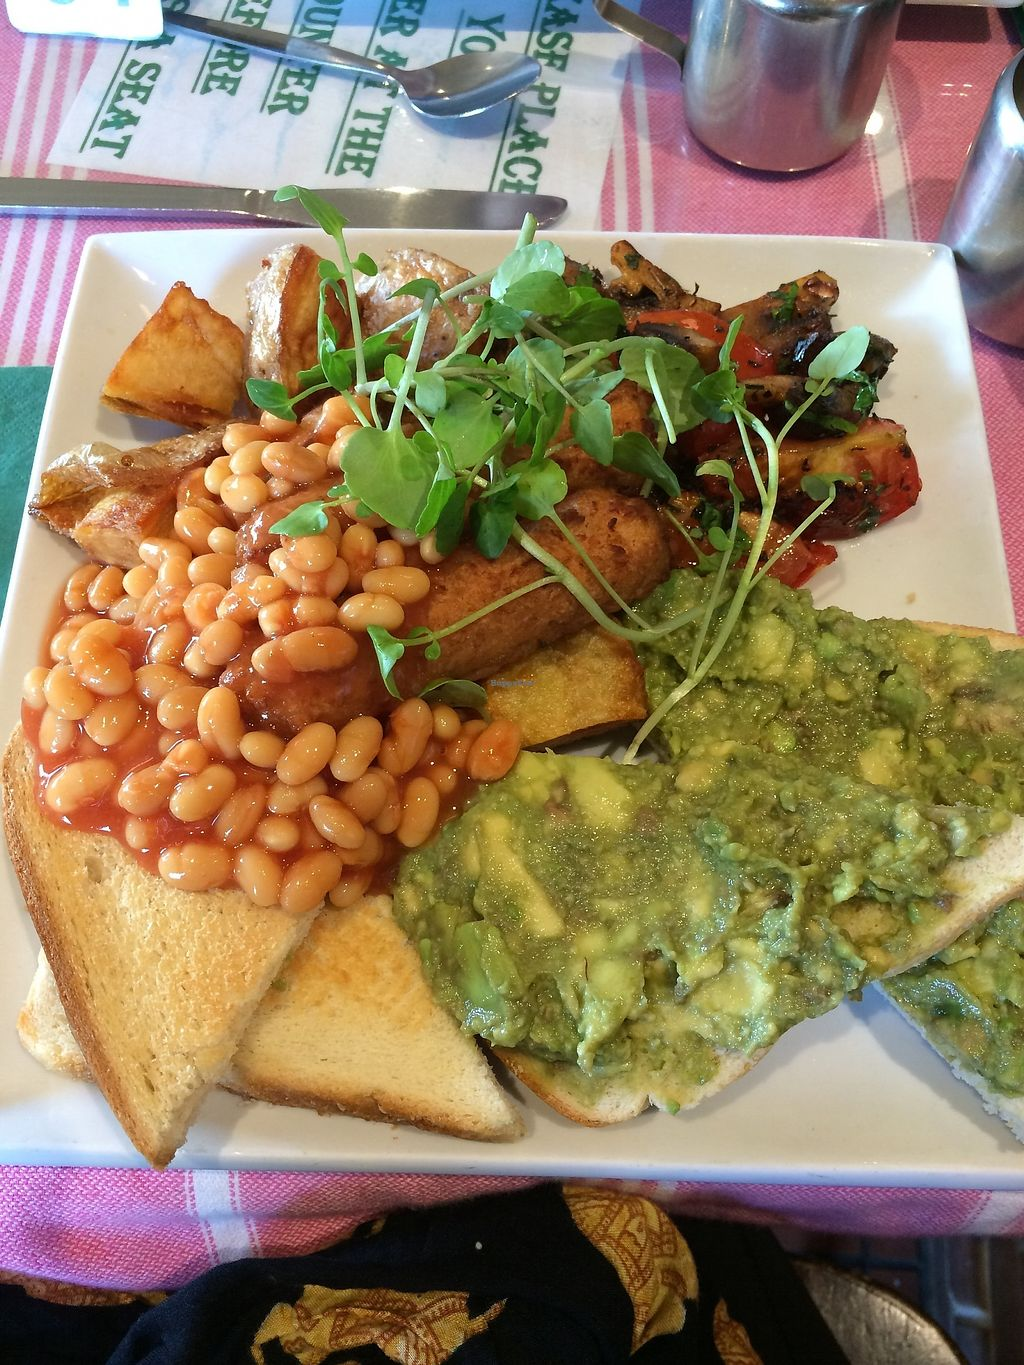 "Photo of The Eating House  by <a href=""/members/profile/washcat"">washcat</a> <br/>I asked them to add avocado to my vegan English breakfast :) <br/> November 12, 2017  - <a href='/contact/abuse/image/104080/324833'>Report</a>"